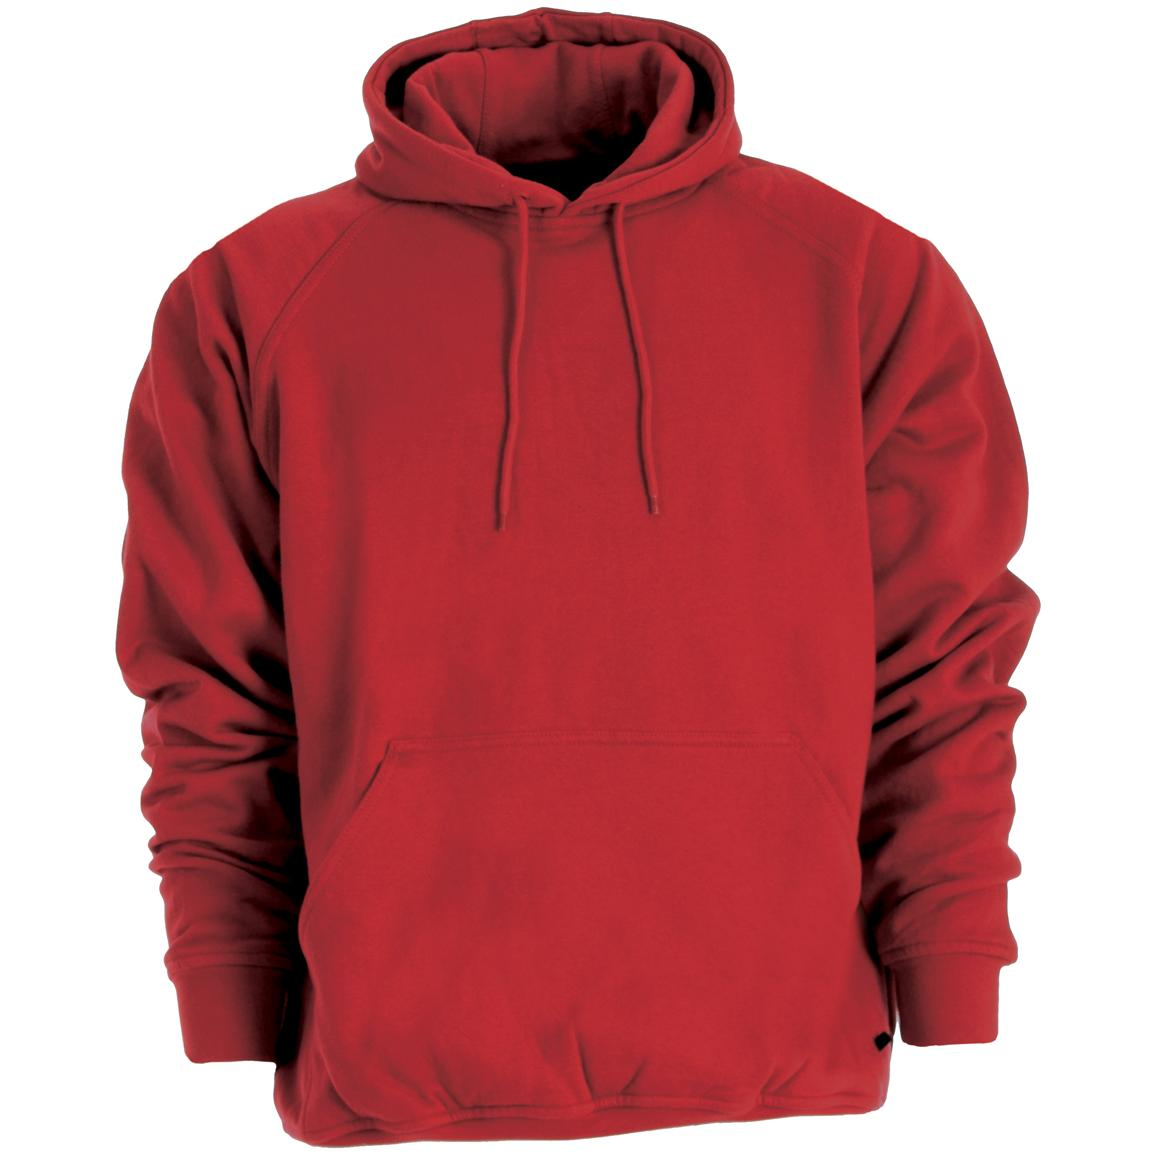 Berne Apparel® Thermal Lined Fleece Hooded Pullover, Ruby Red